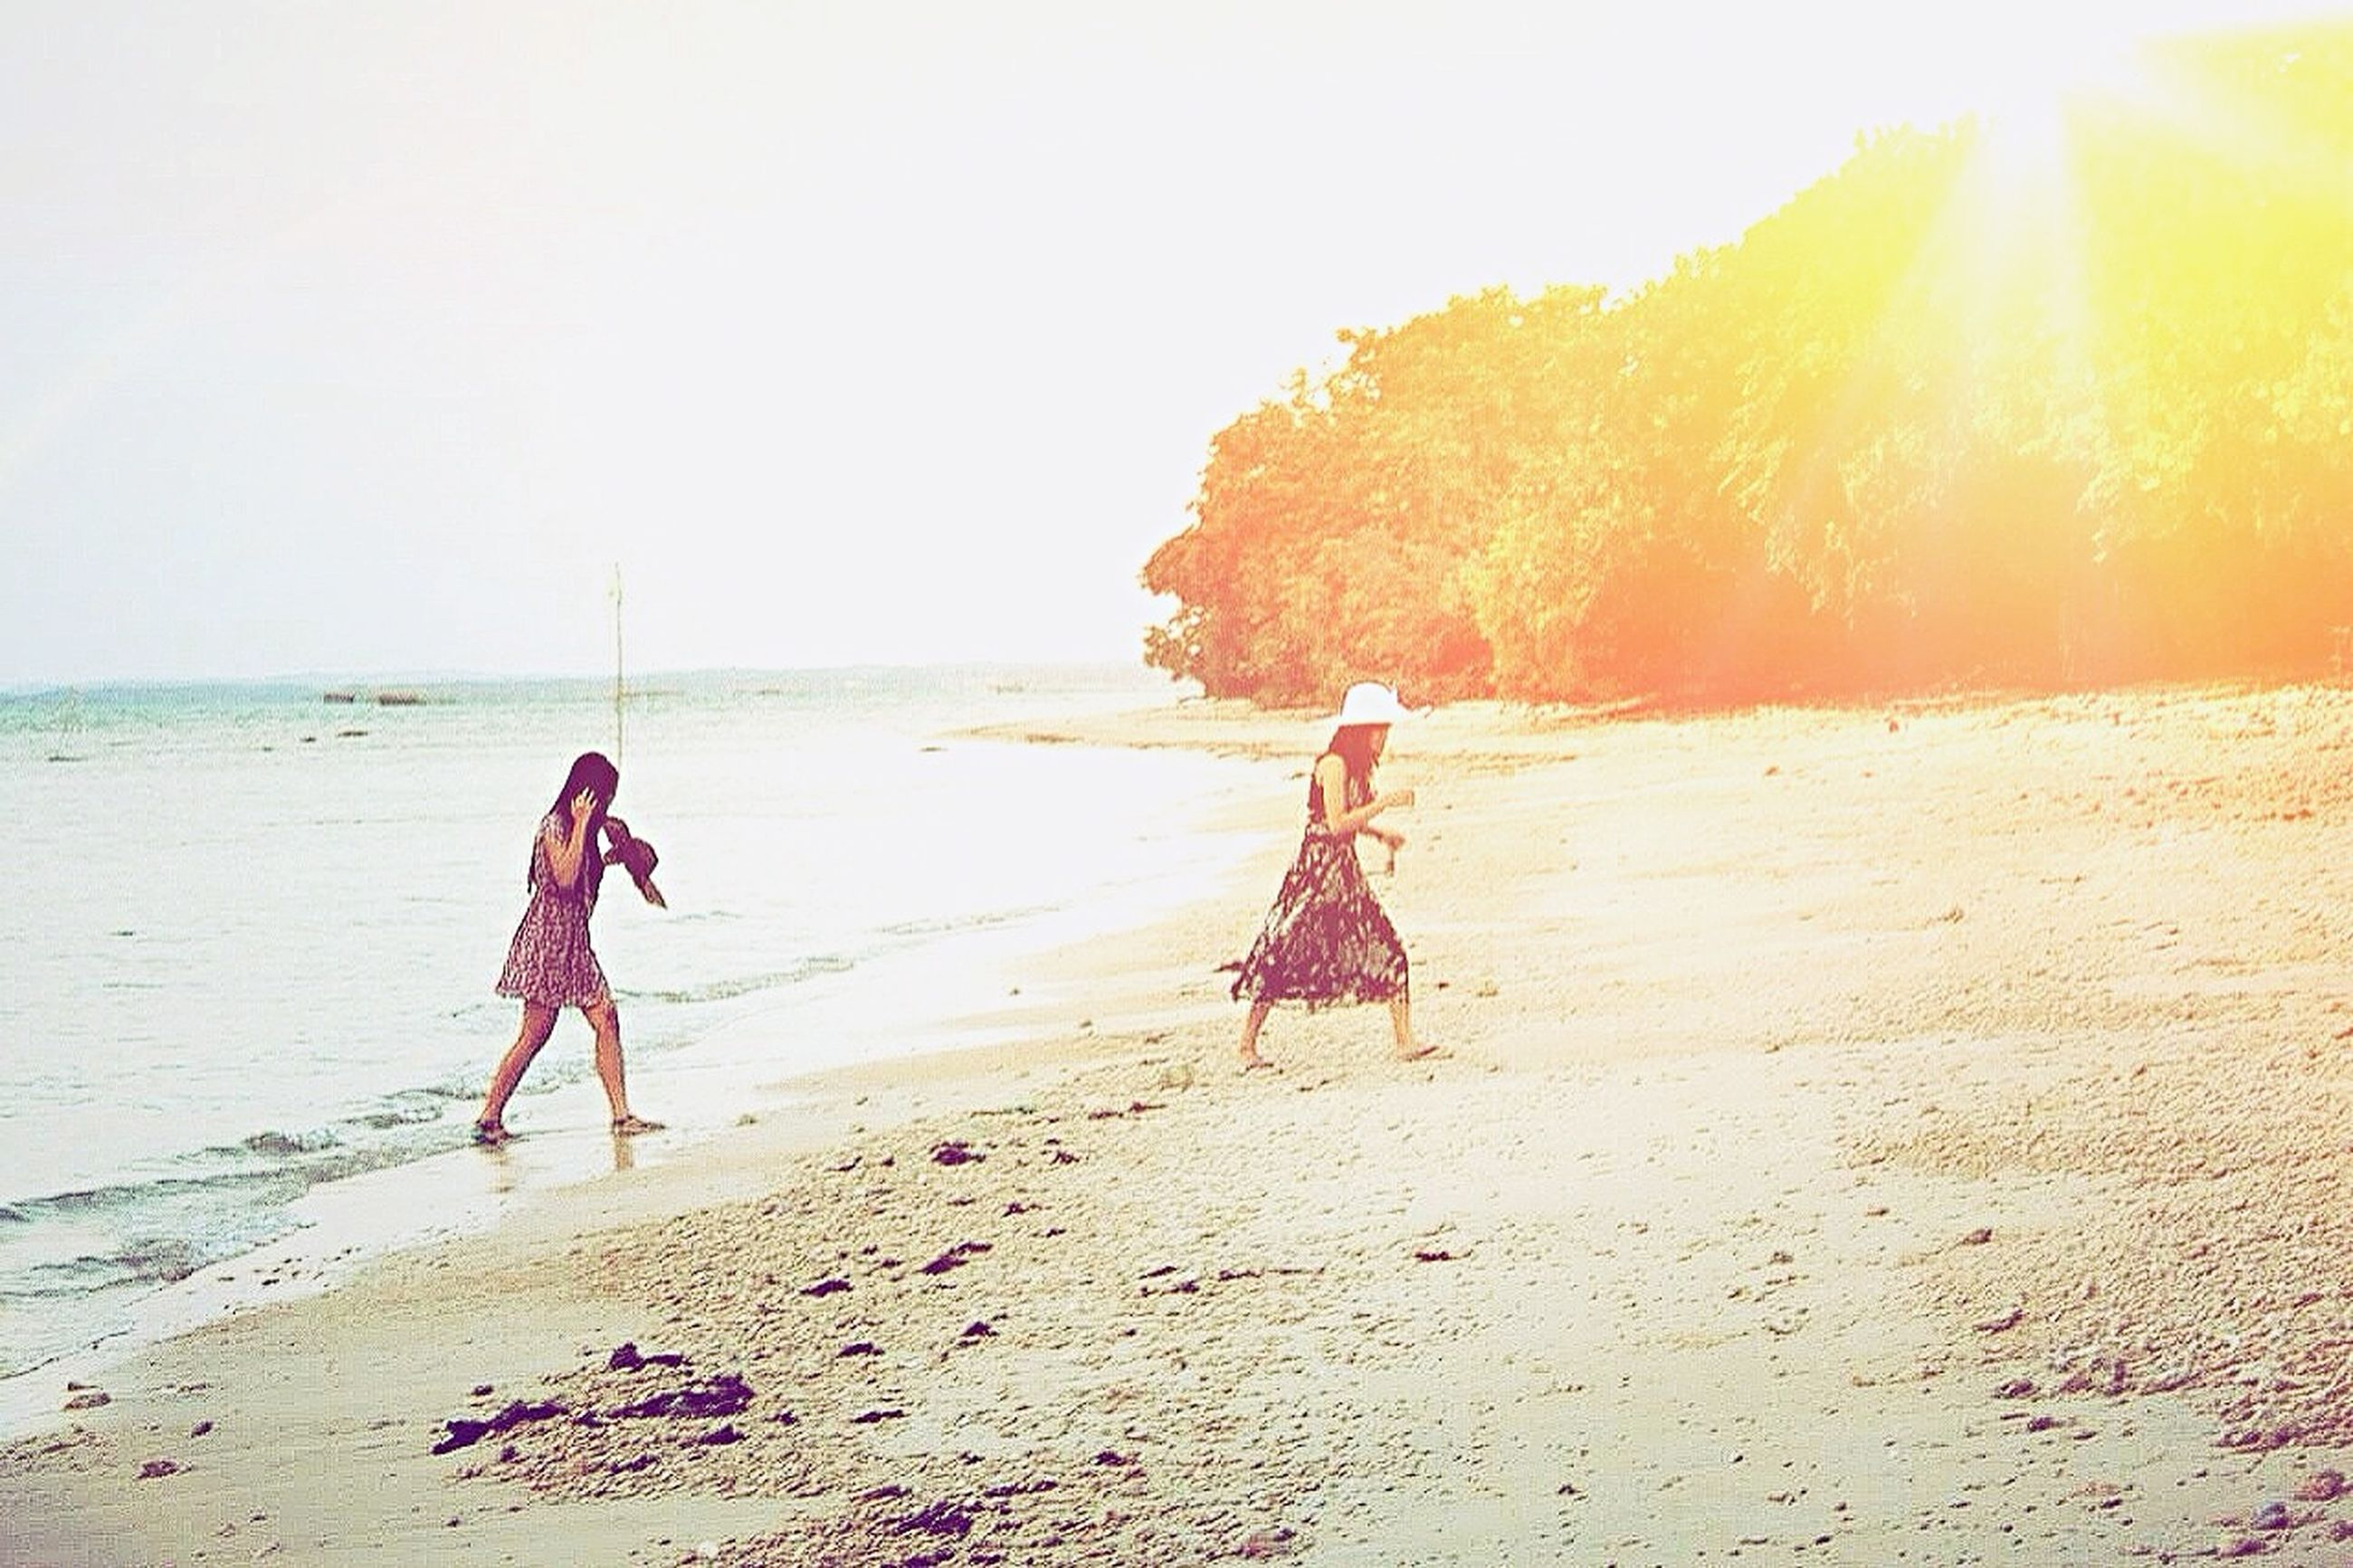 beach, sand, shore, sea, leisure activity, lifestyles, full length, horizon over water, clear sky, vacations, water, sunlight, scenics, enjoyment, tranquility, nature, beauty in nature, tranquil scene